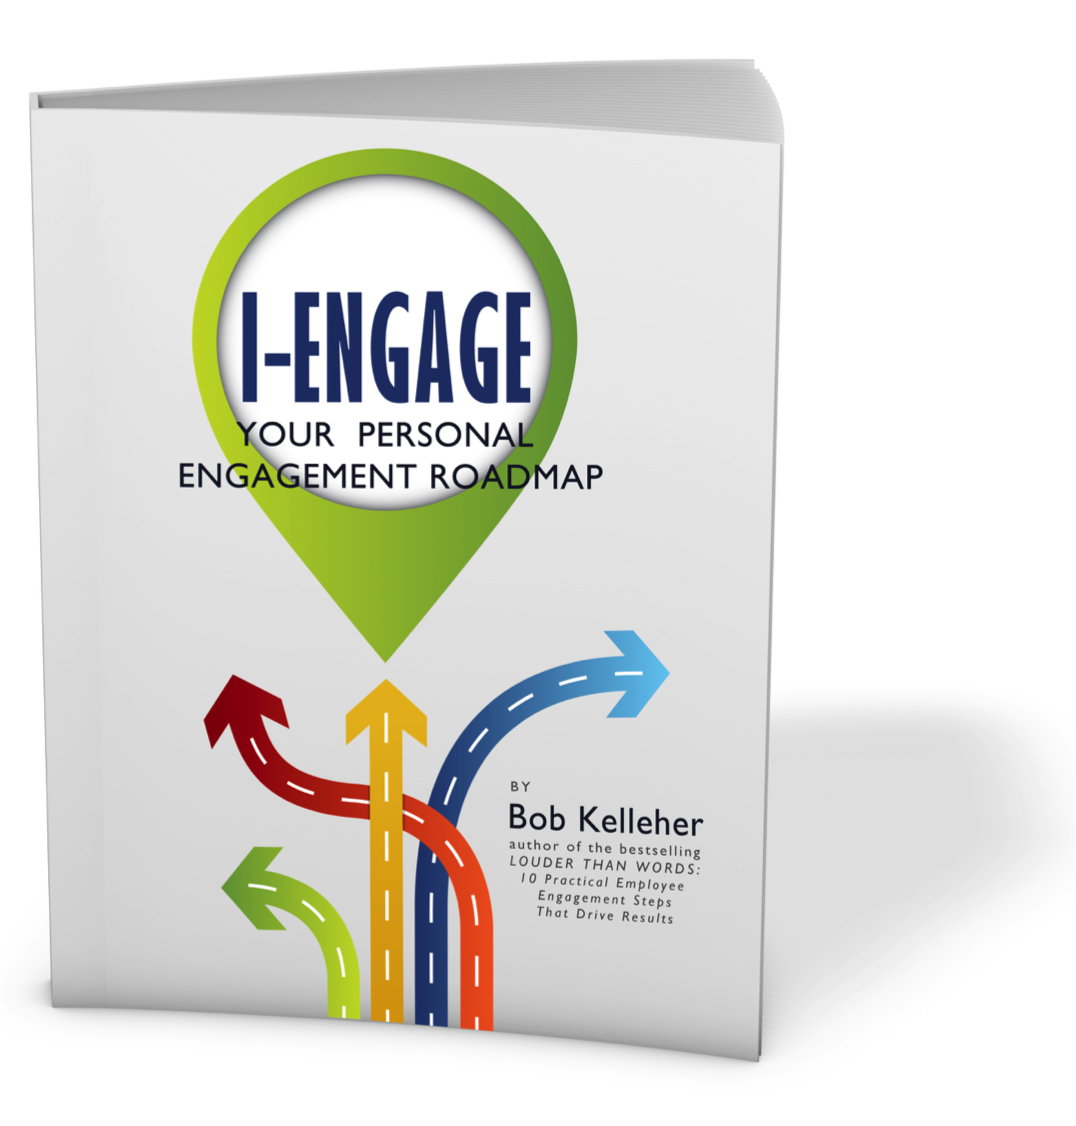 iEngage Book Image